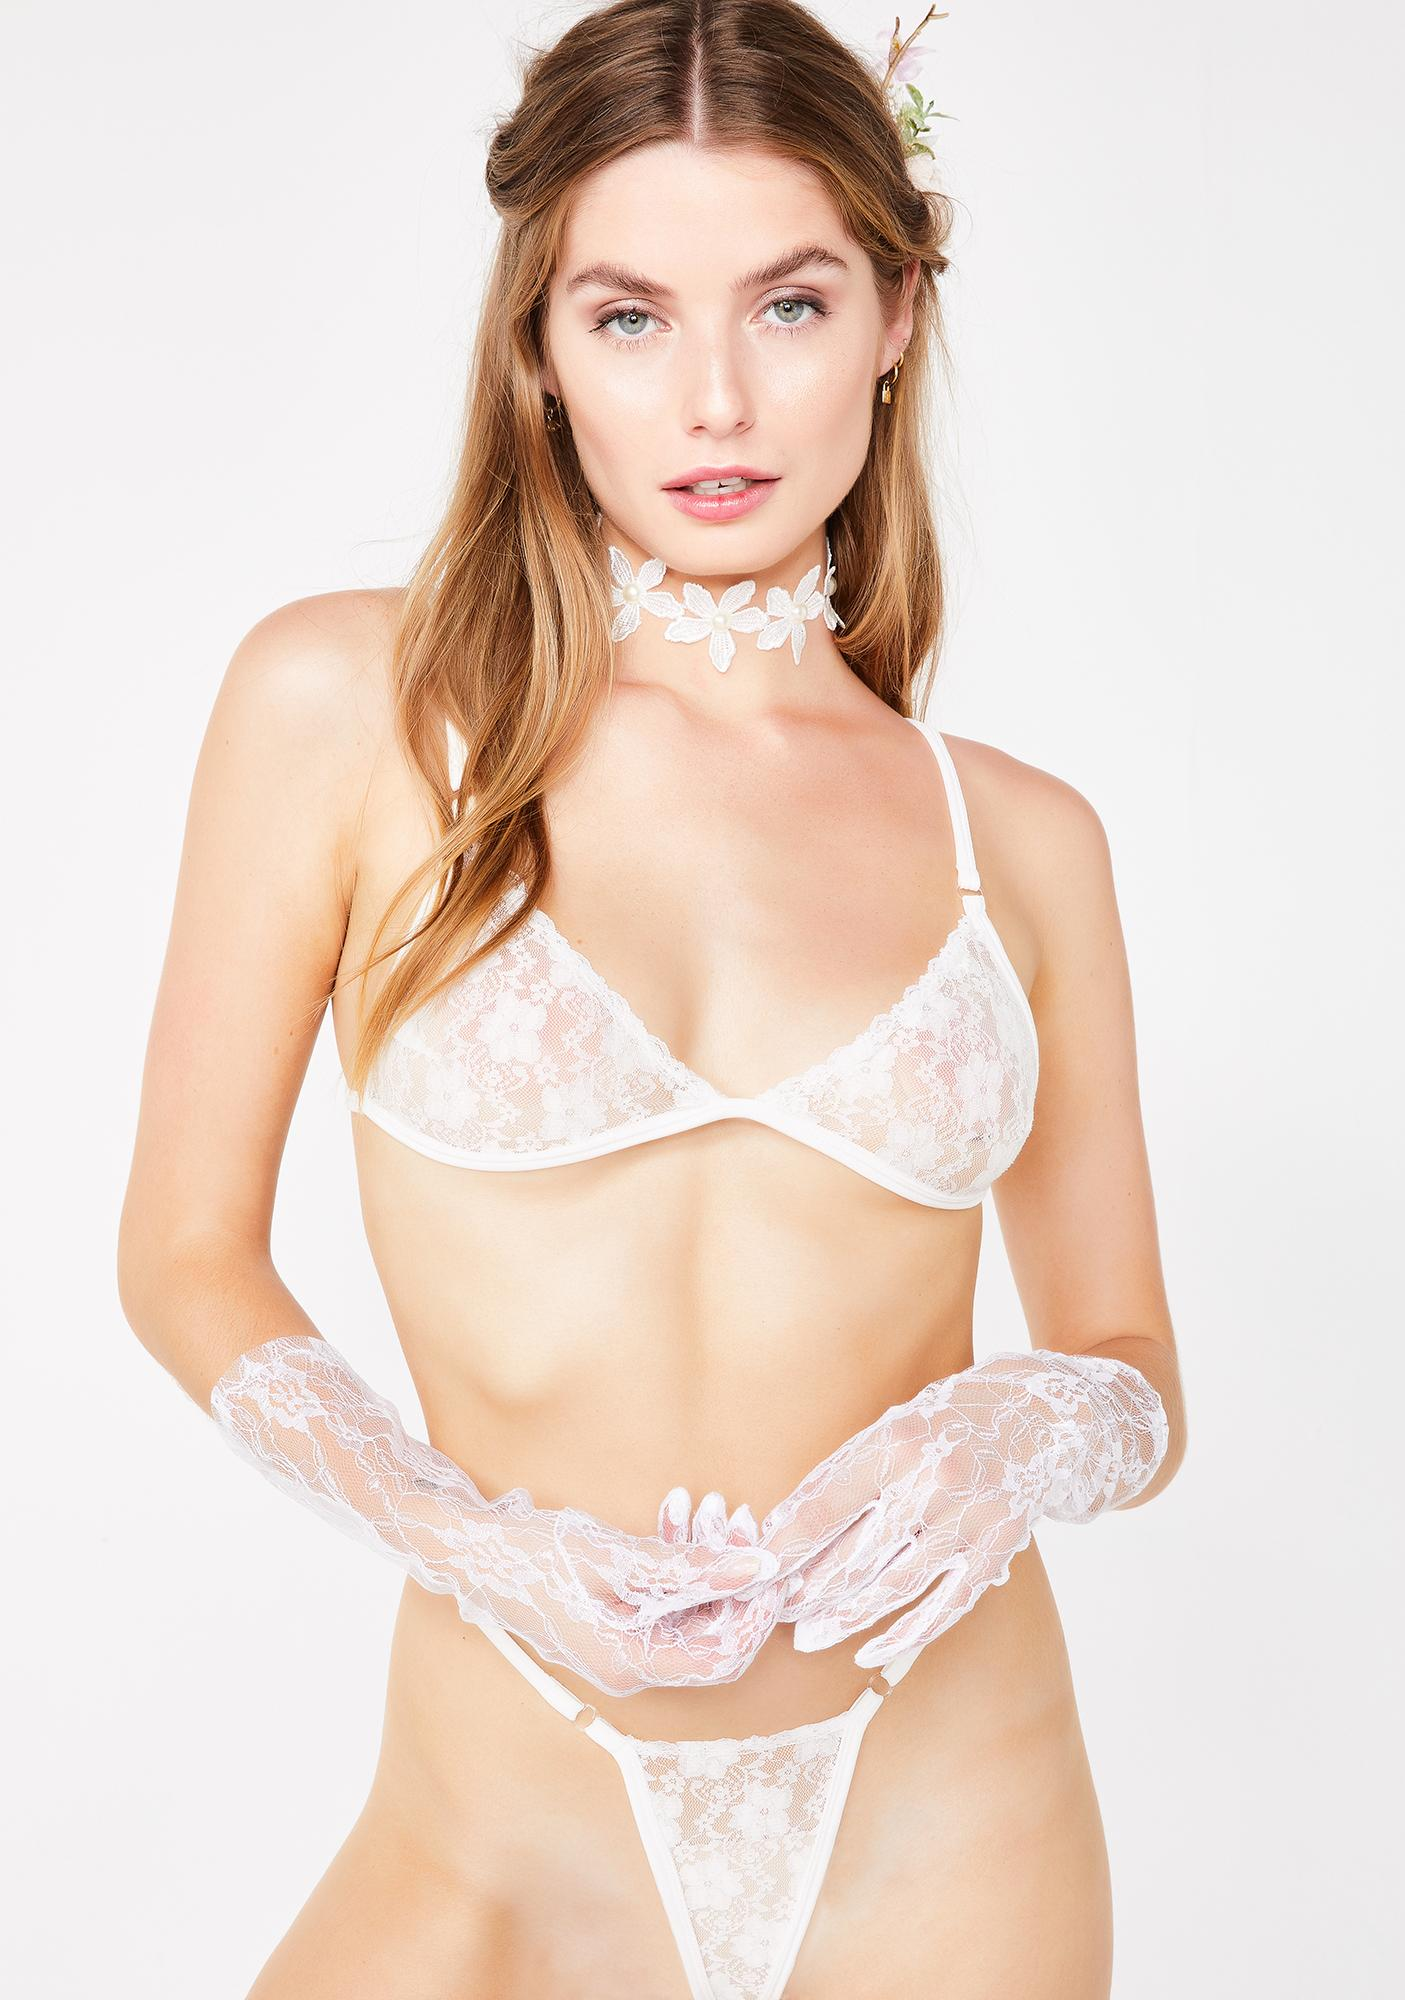 My Mum Made It Glow Lace Bra N' Thong Set